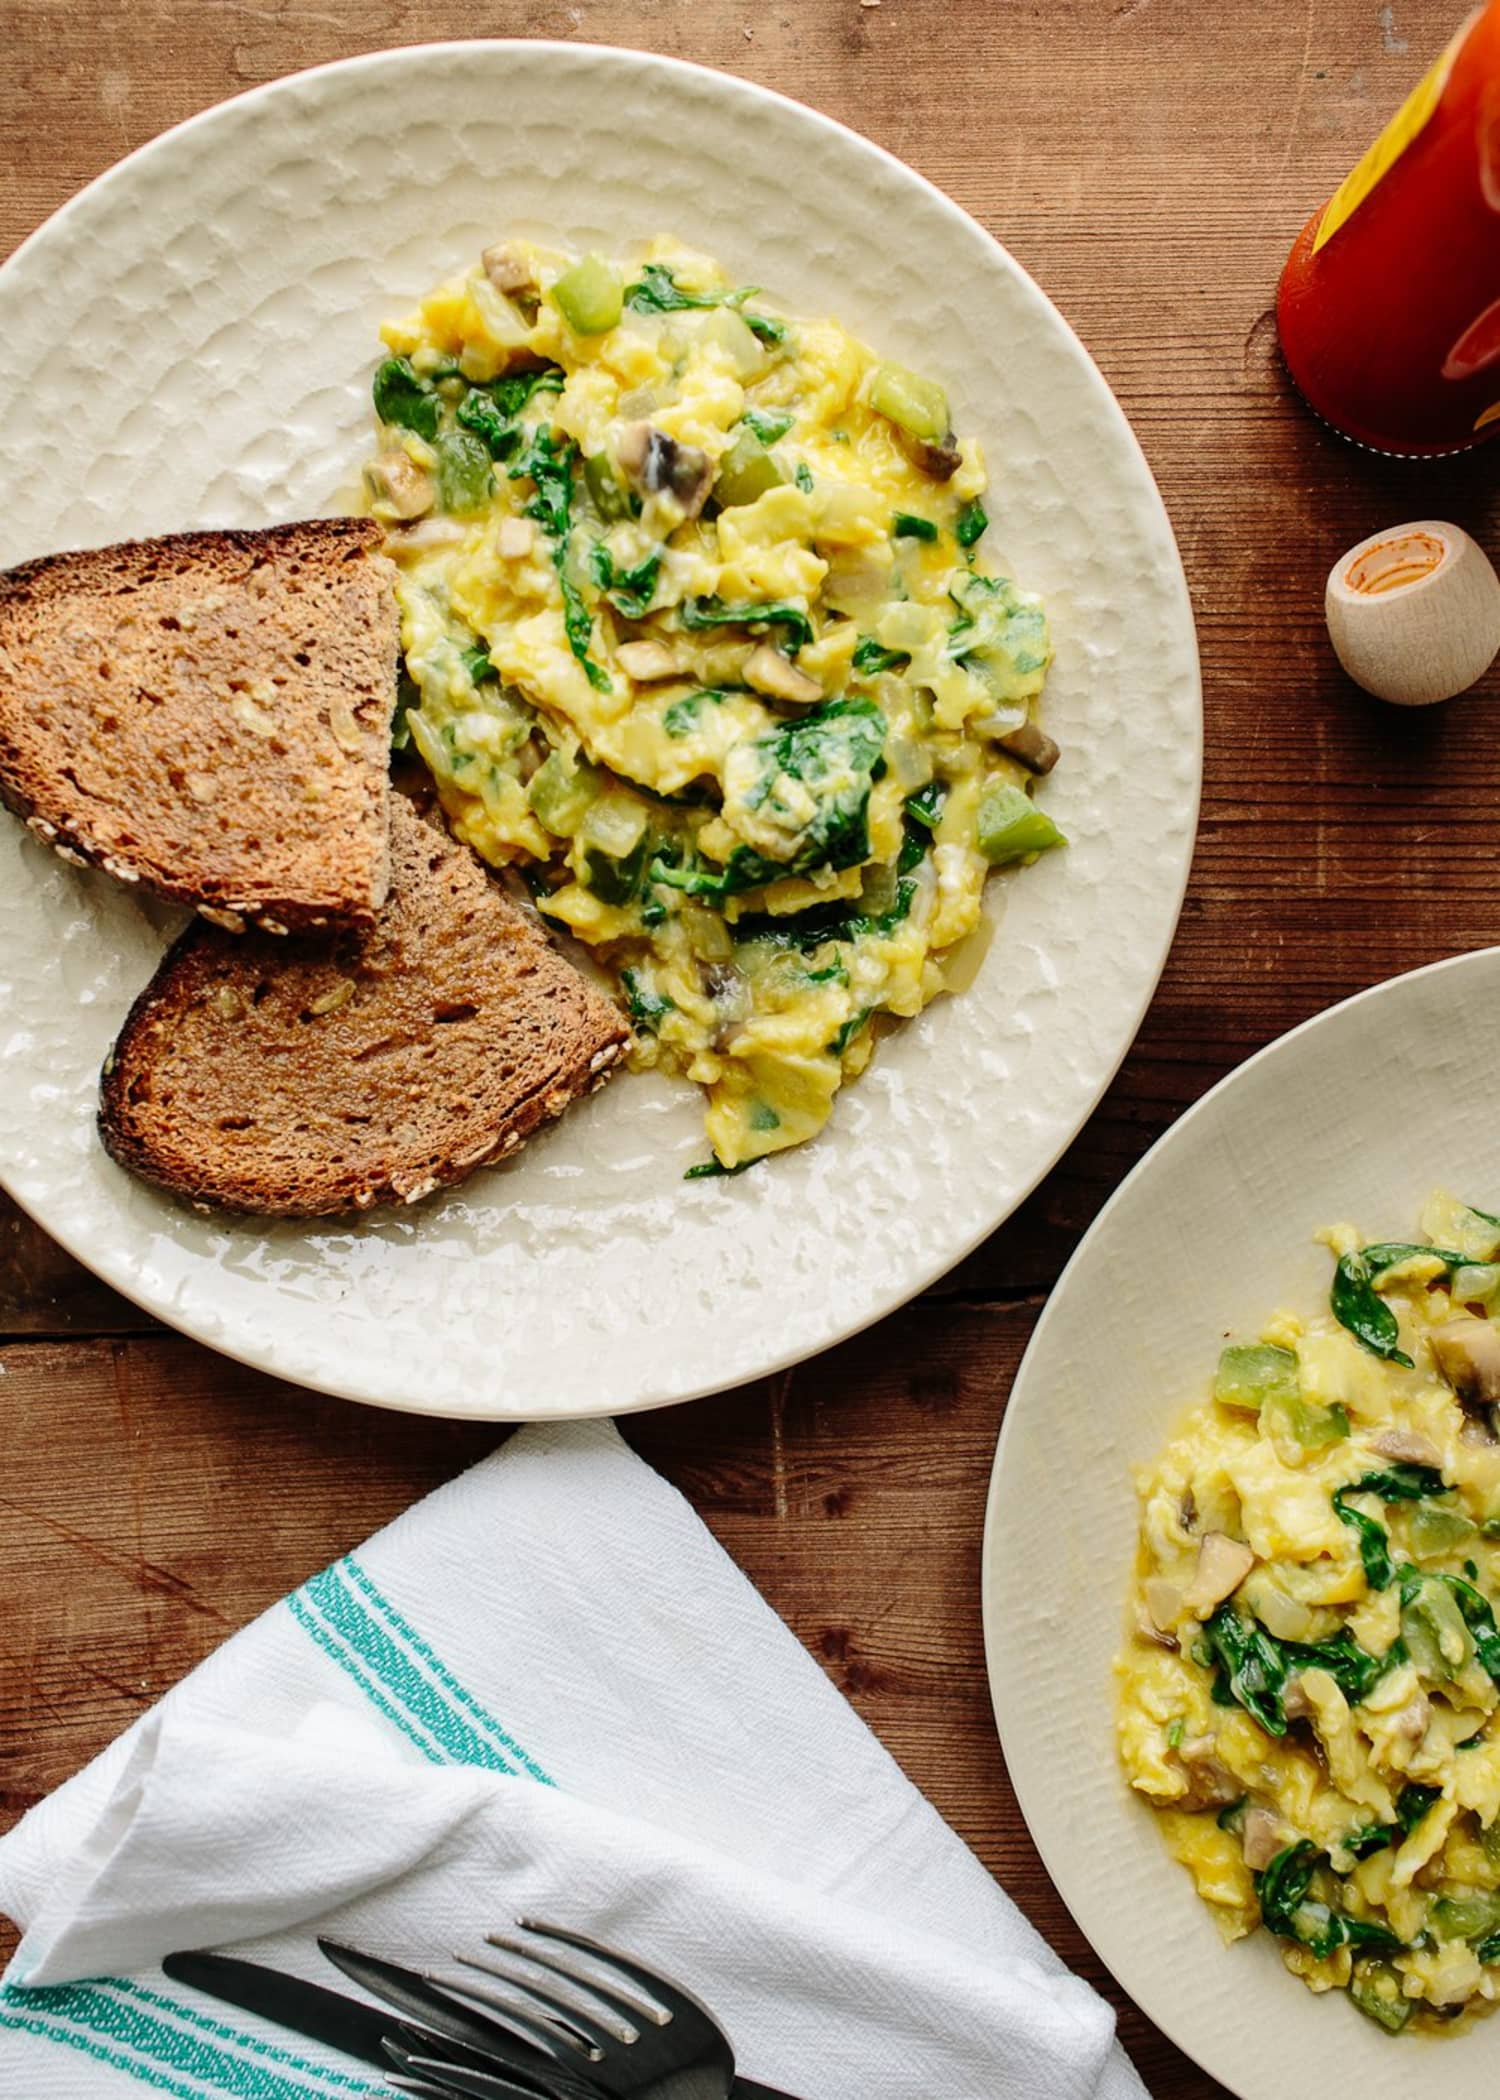 The 5 Rules of Ultimate Scrambled Eggs